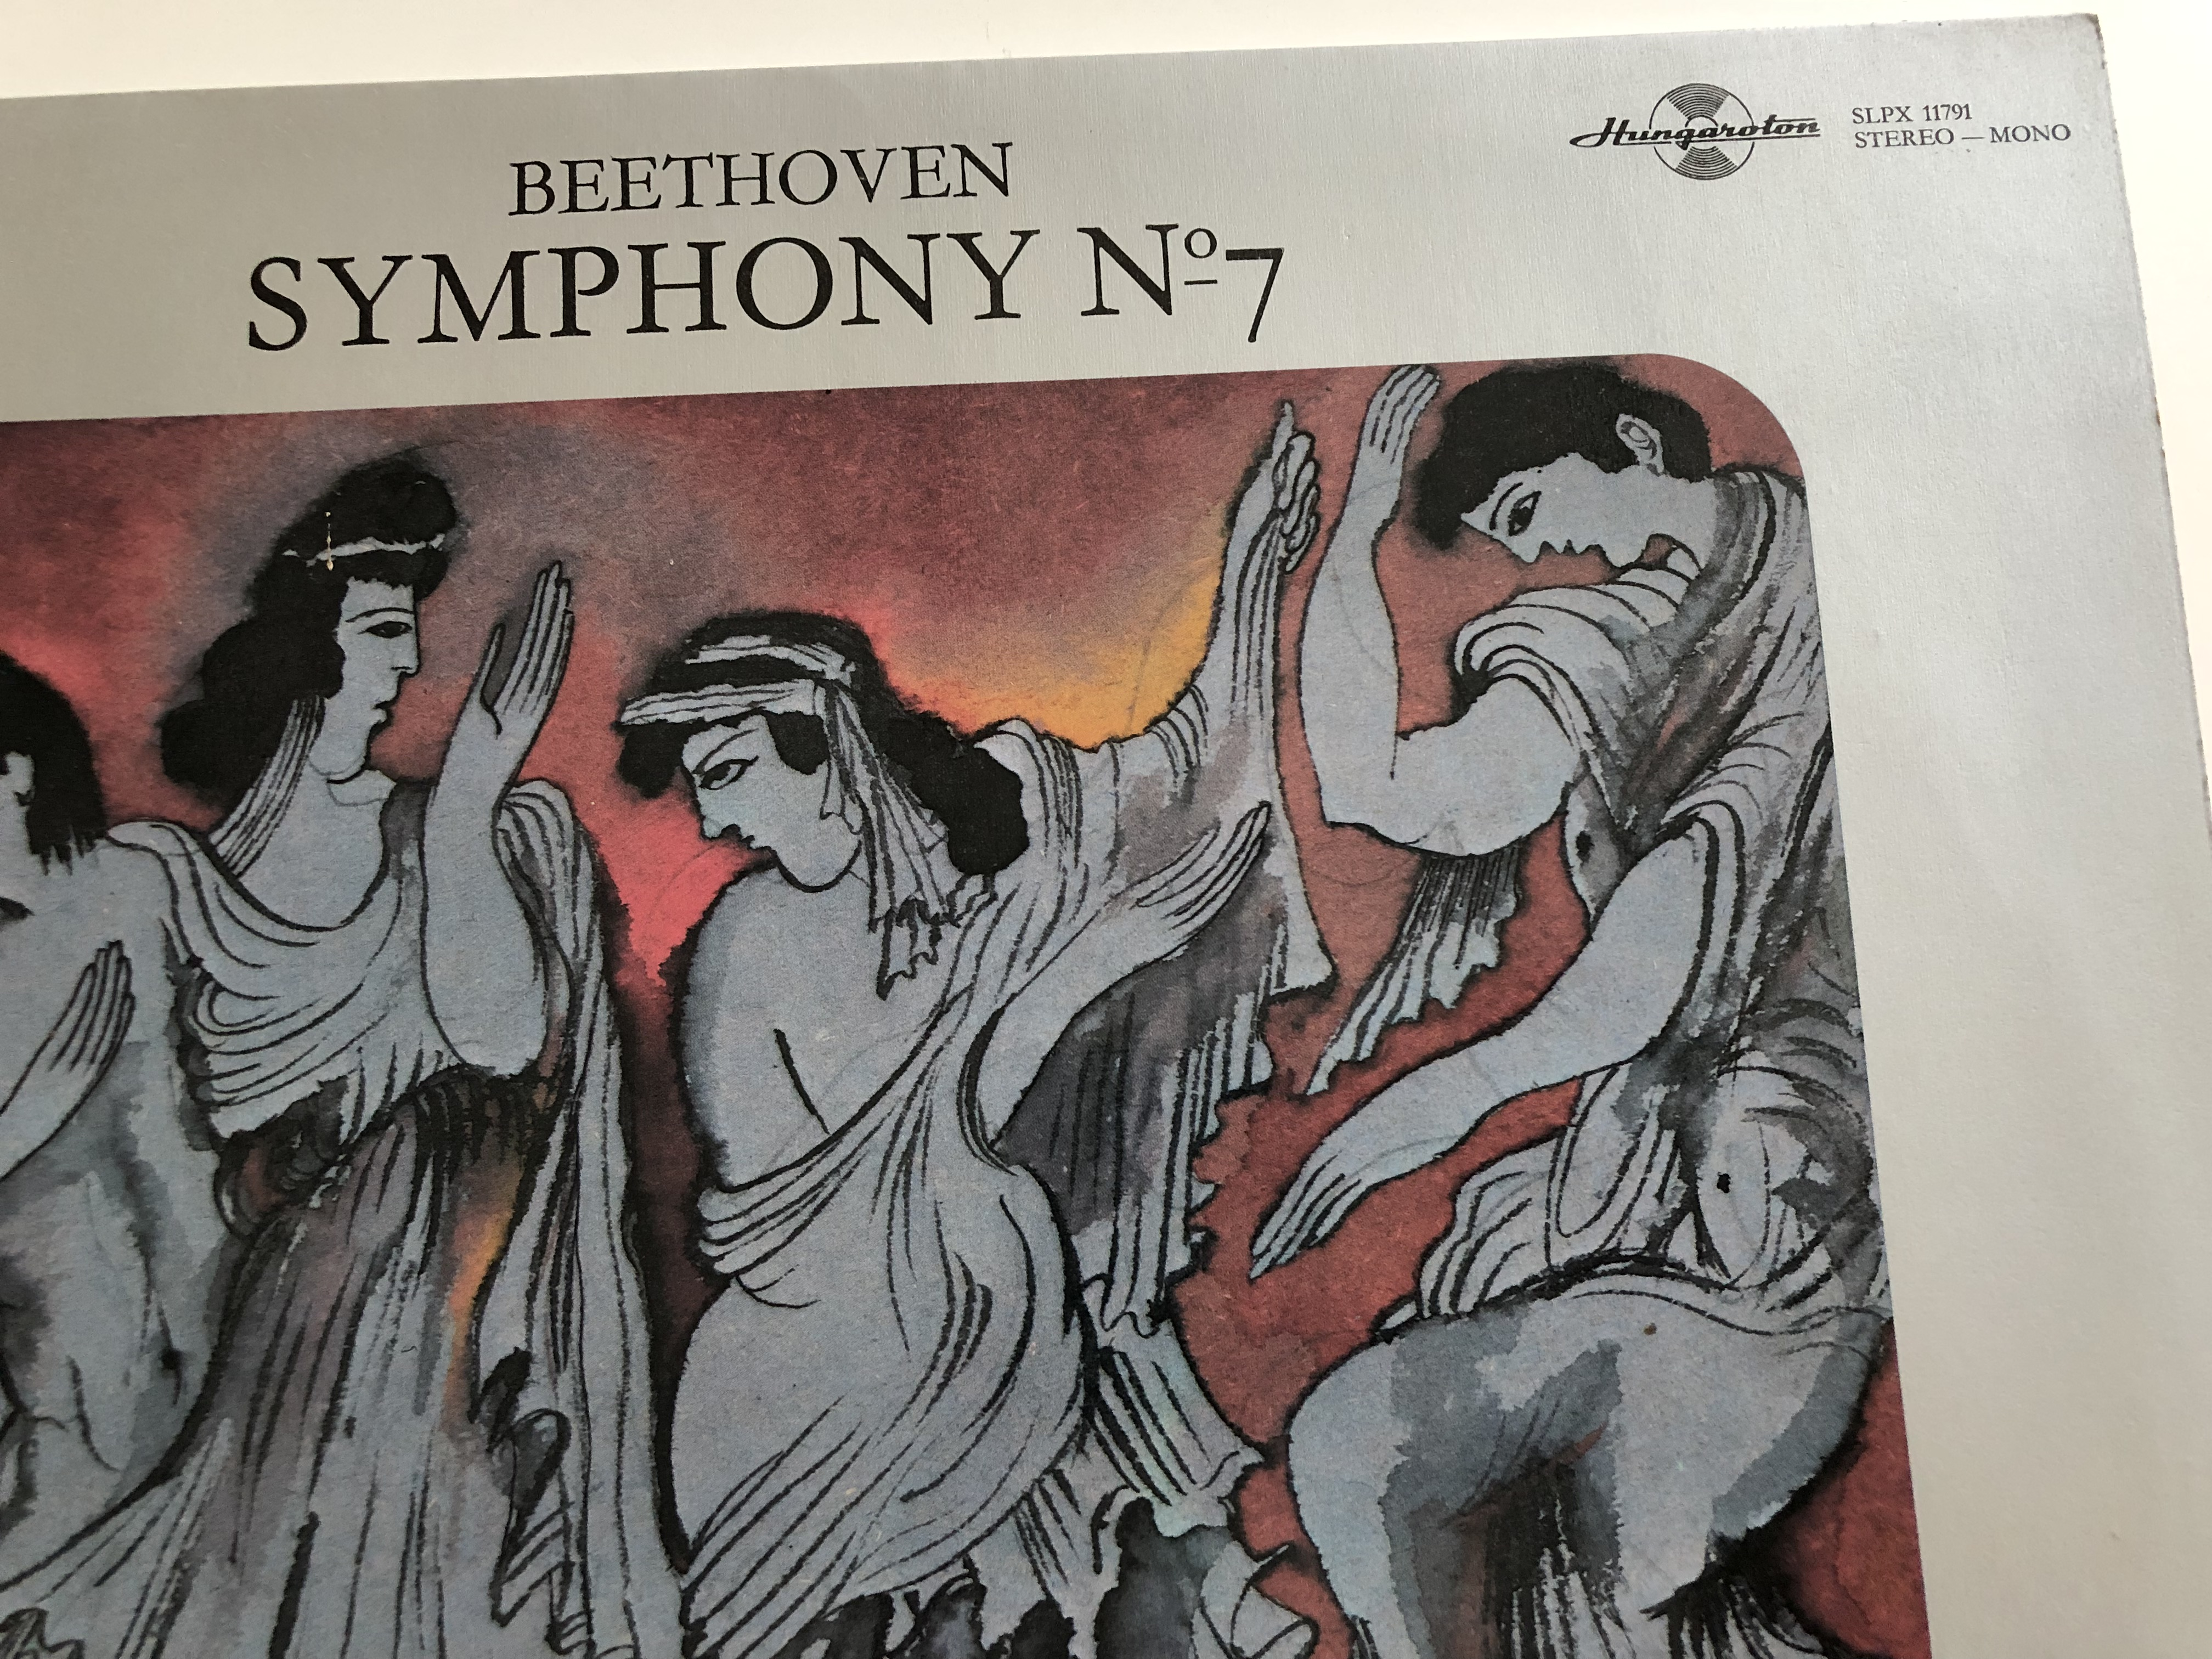 beethoven-symphony-7-hungarian-state-orchestra-conducted-j-nos-ferencsik-hungaroton-lp-stereo-mono-slpx-11791-2-.jpg